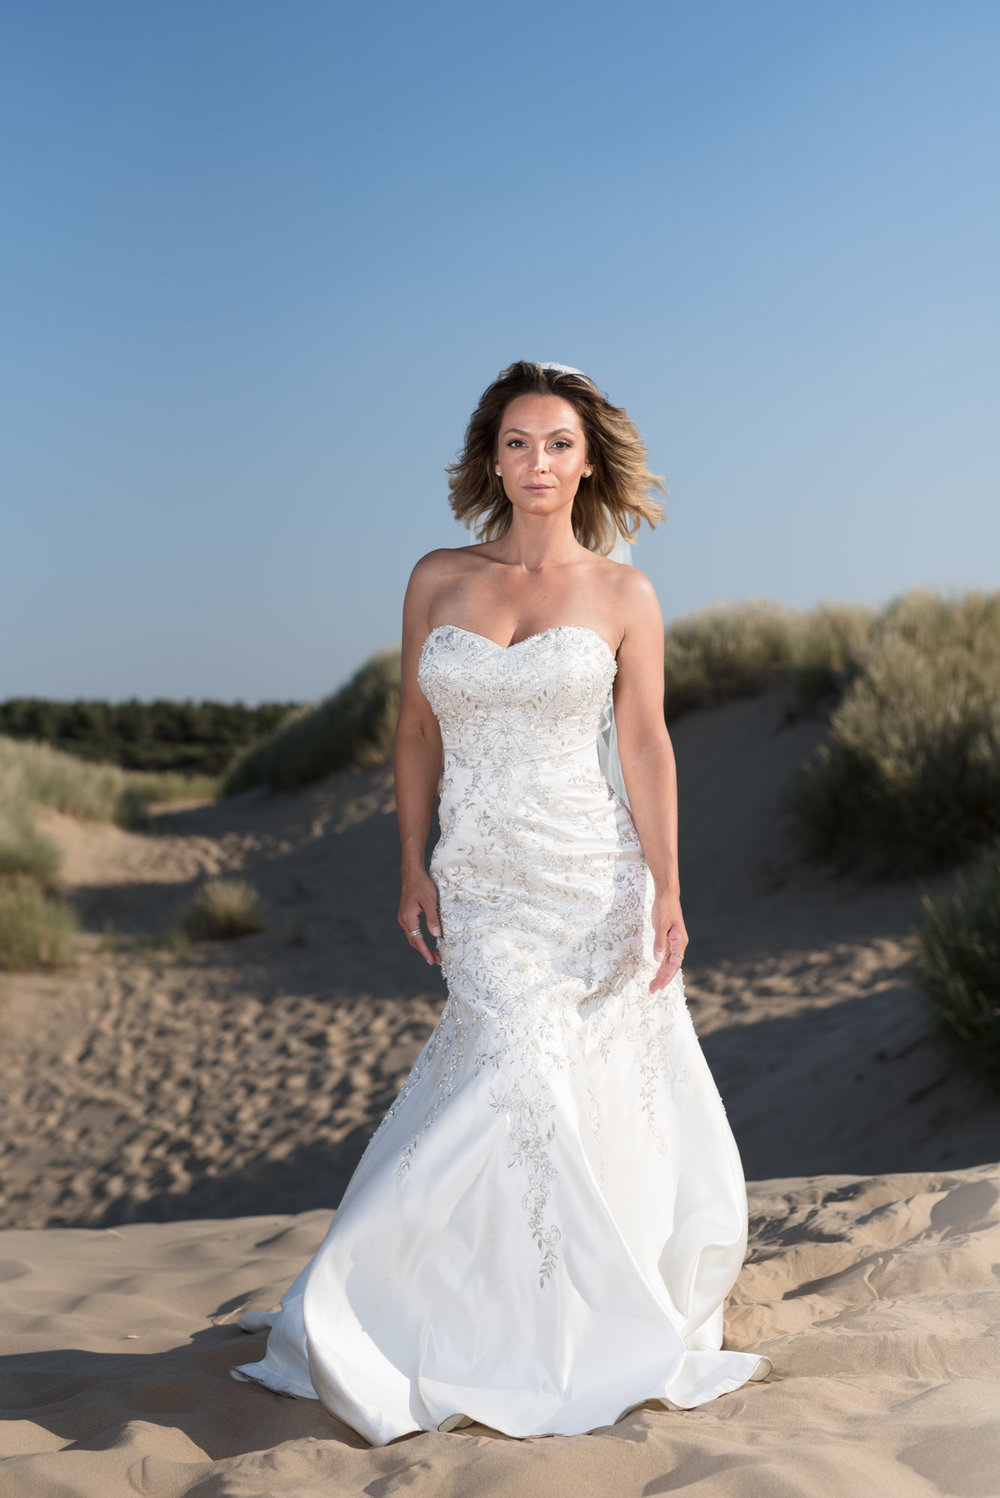 Brides dress on the beach